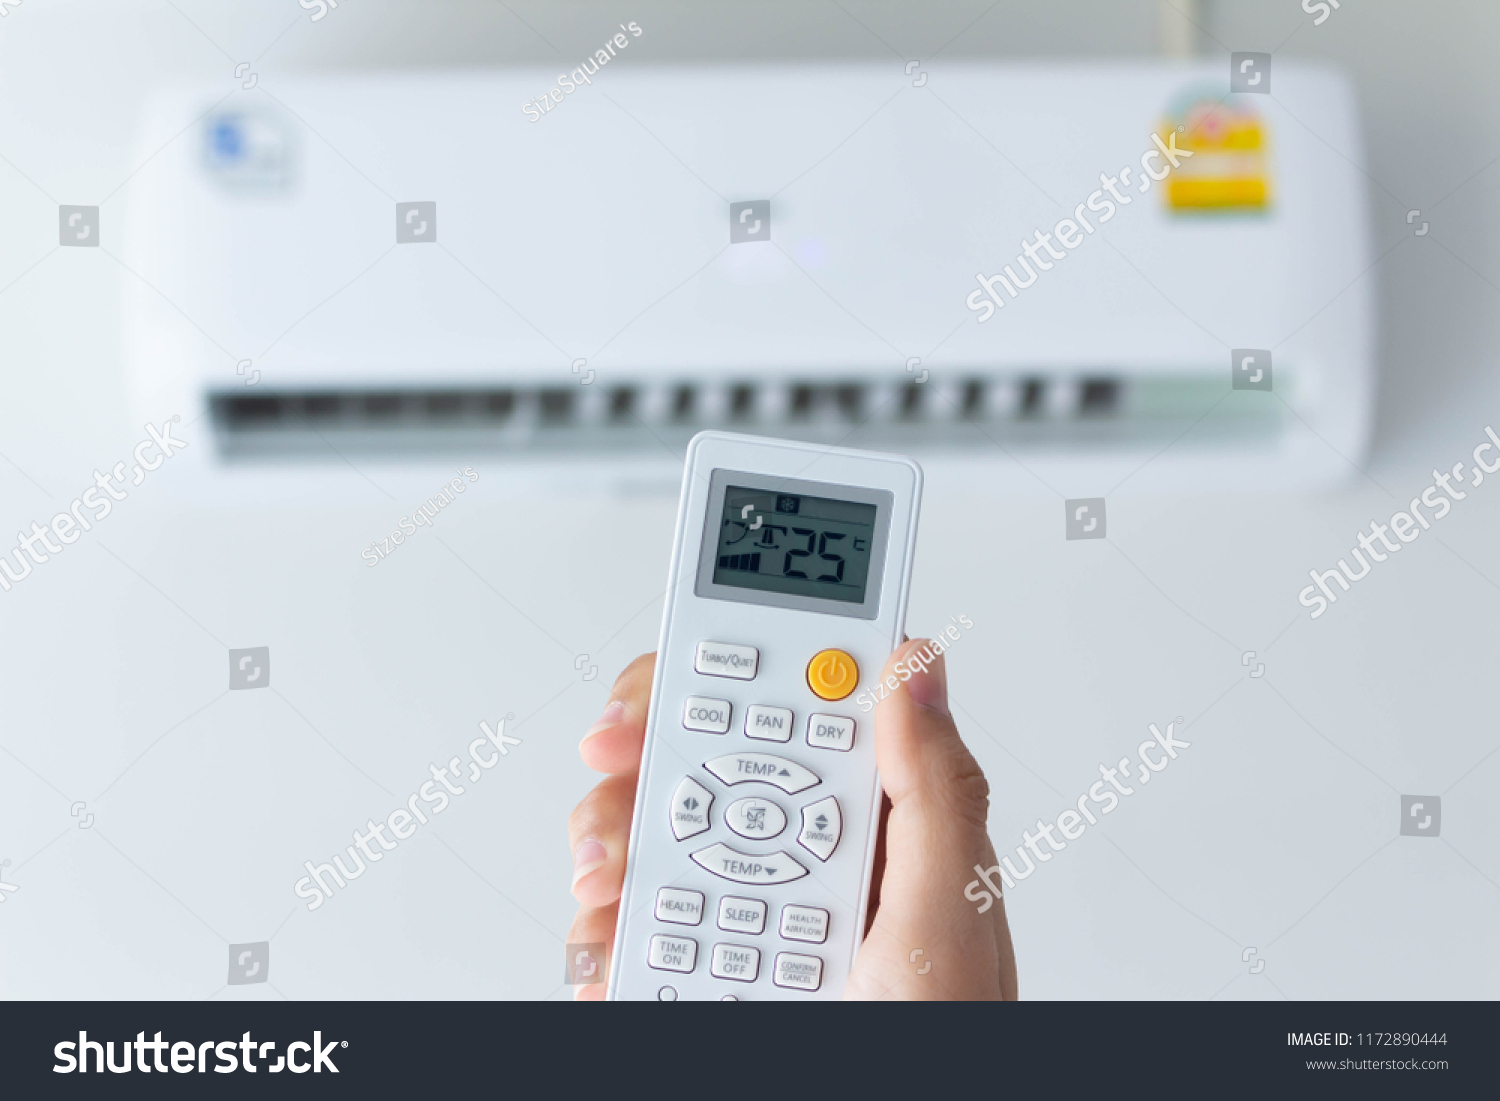 Energy Saving Air Conditioner Presetting Temperature Stock